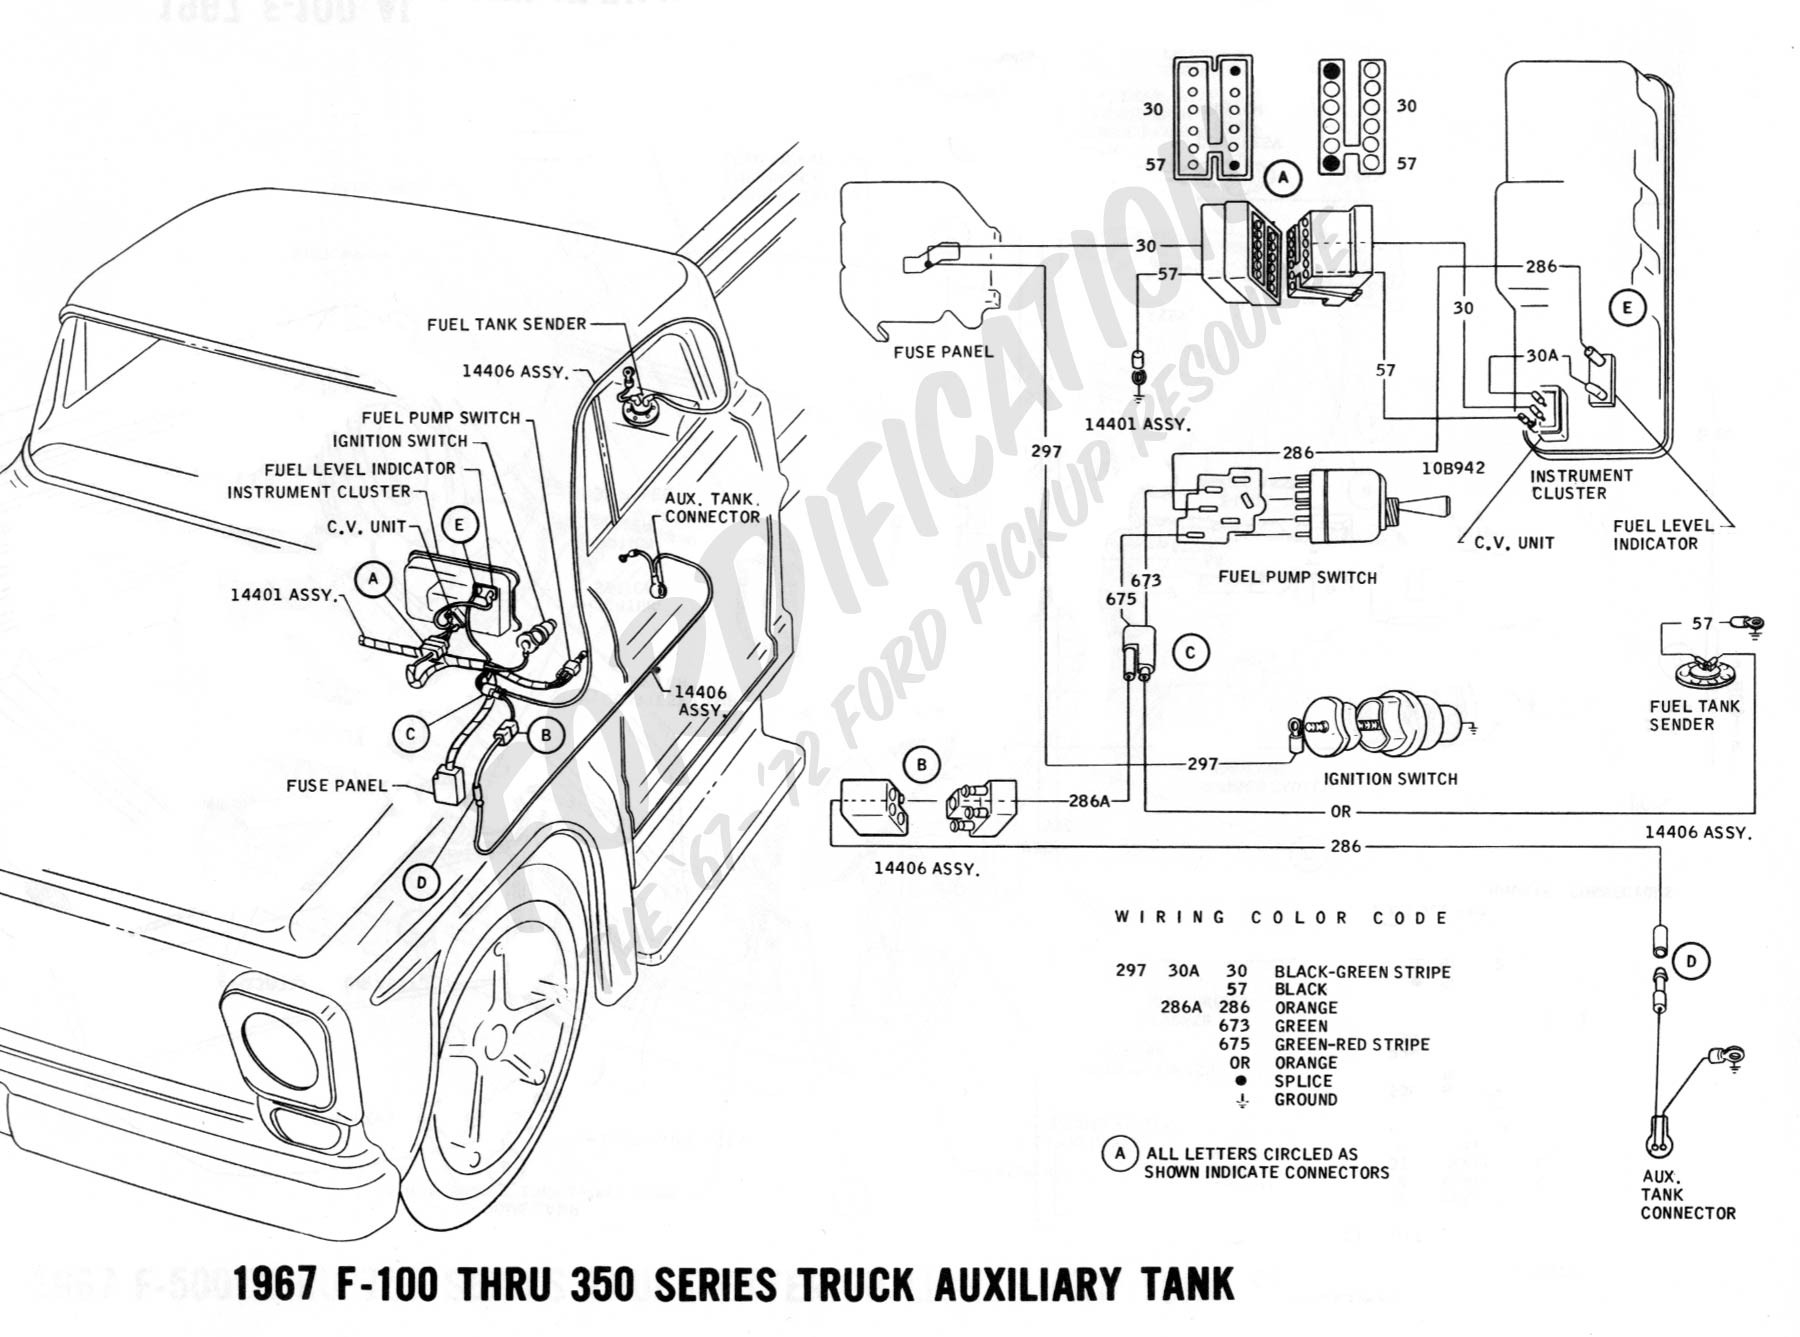 1988 Ford F 150 Engine Diagram Wiring Library 1998 1986 F150 86 Ranger As Well